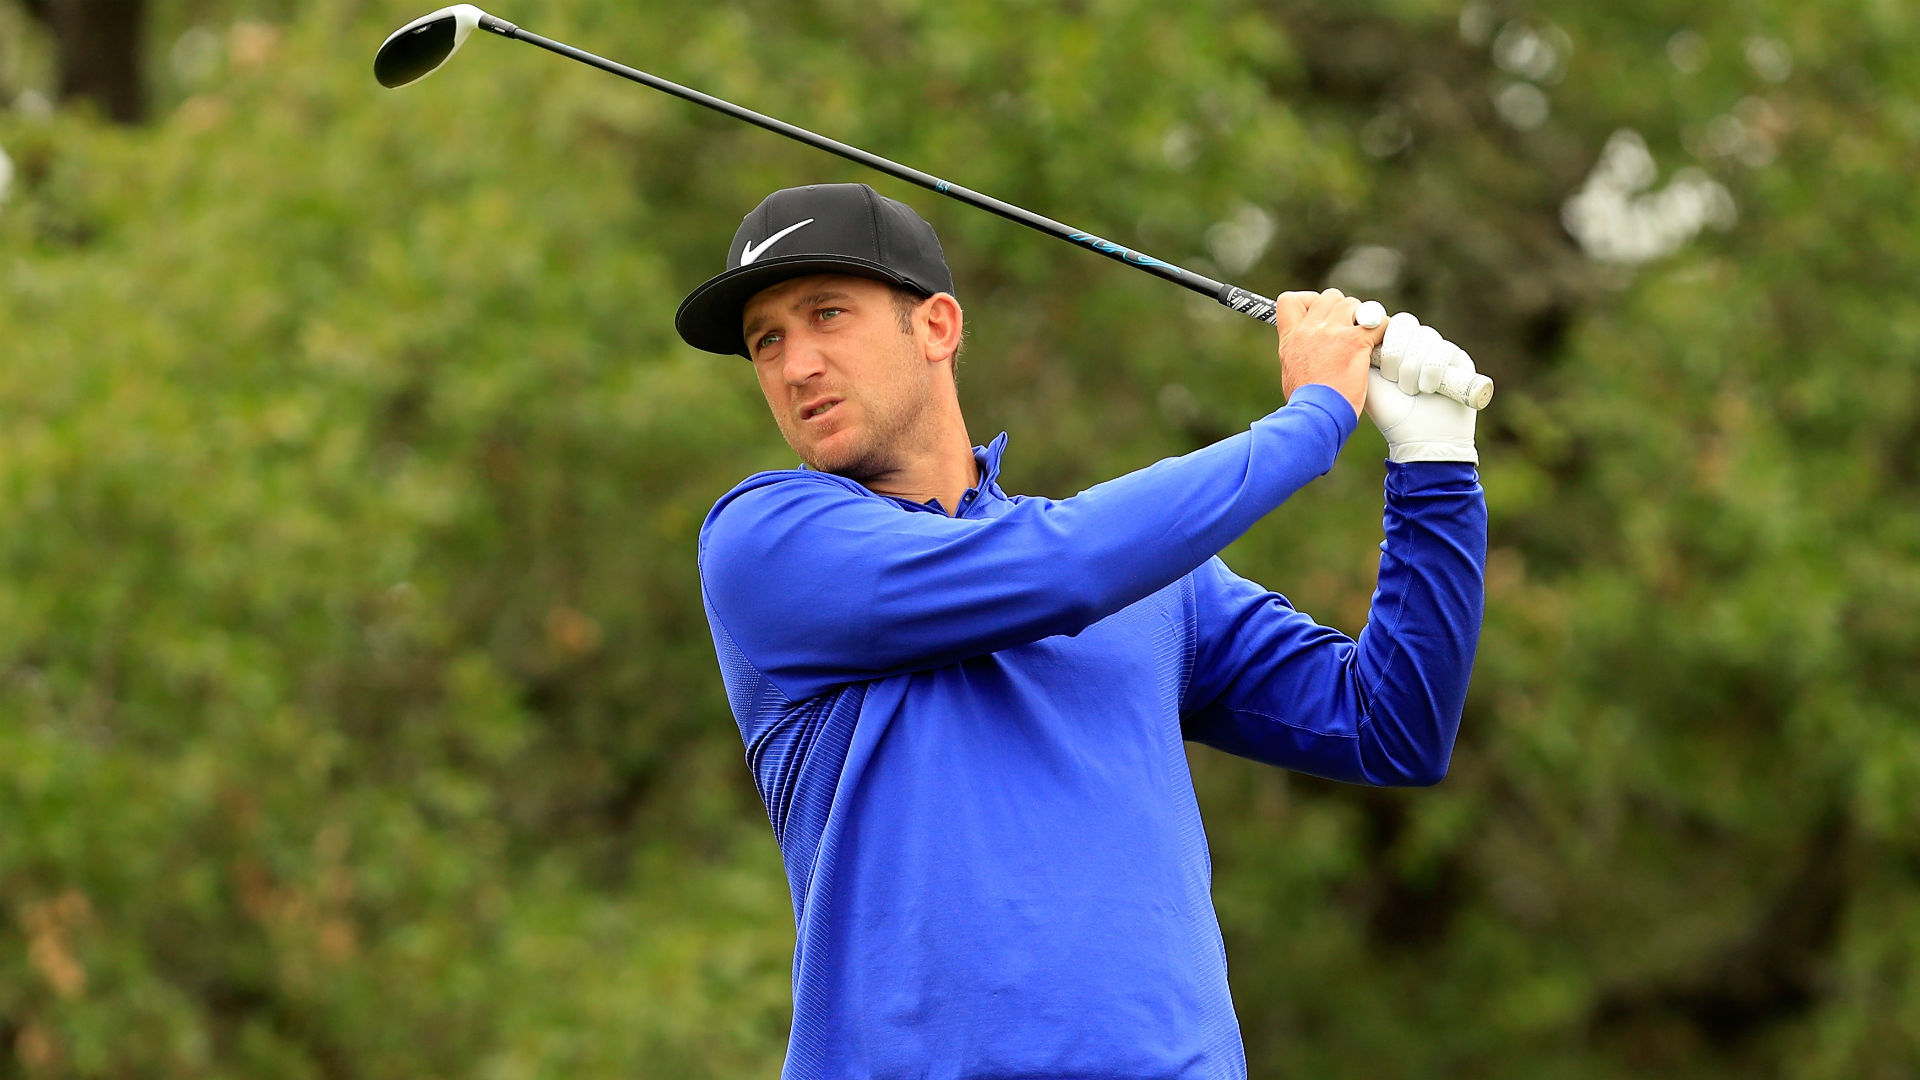 Ryan Palmer: Palmer nets third straight top 6 @ Texas Open